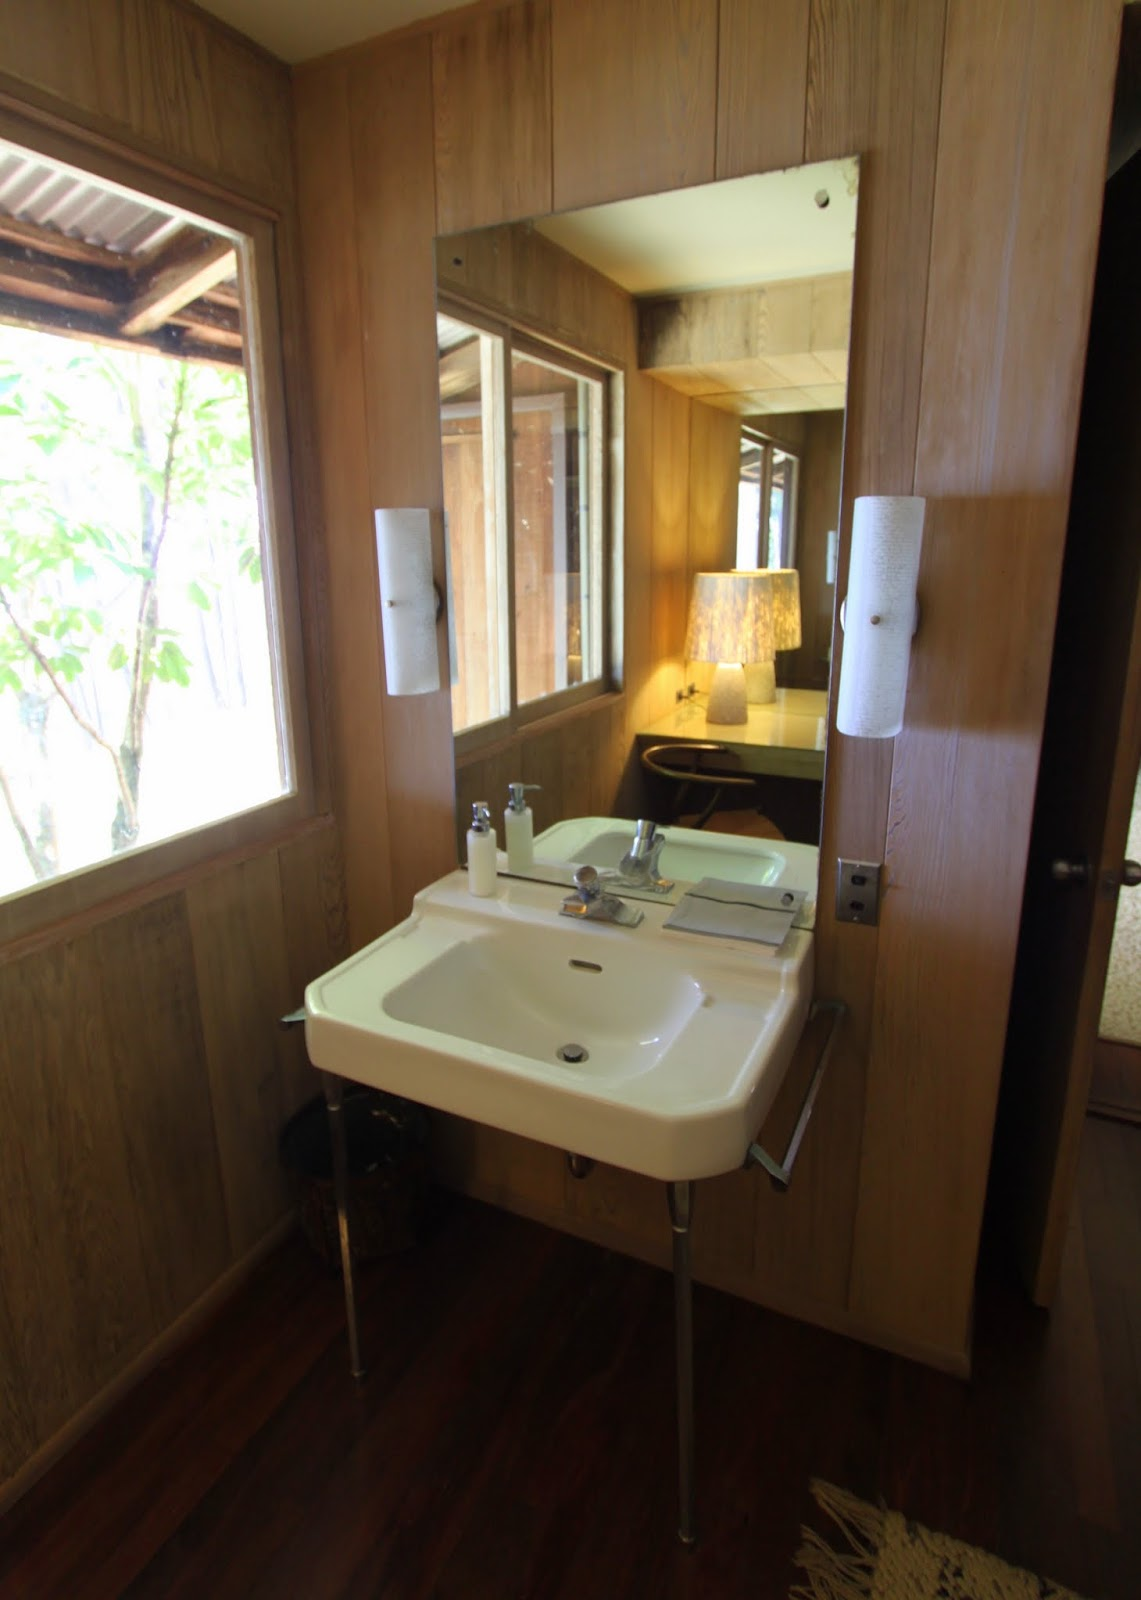 Bathroom Sinks Honolulu the liljestrand houseossipoff in hawaii: tour continues with